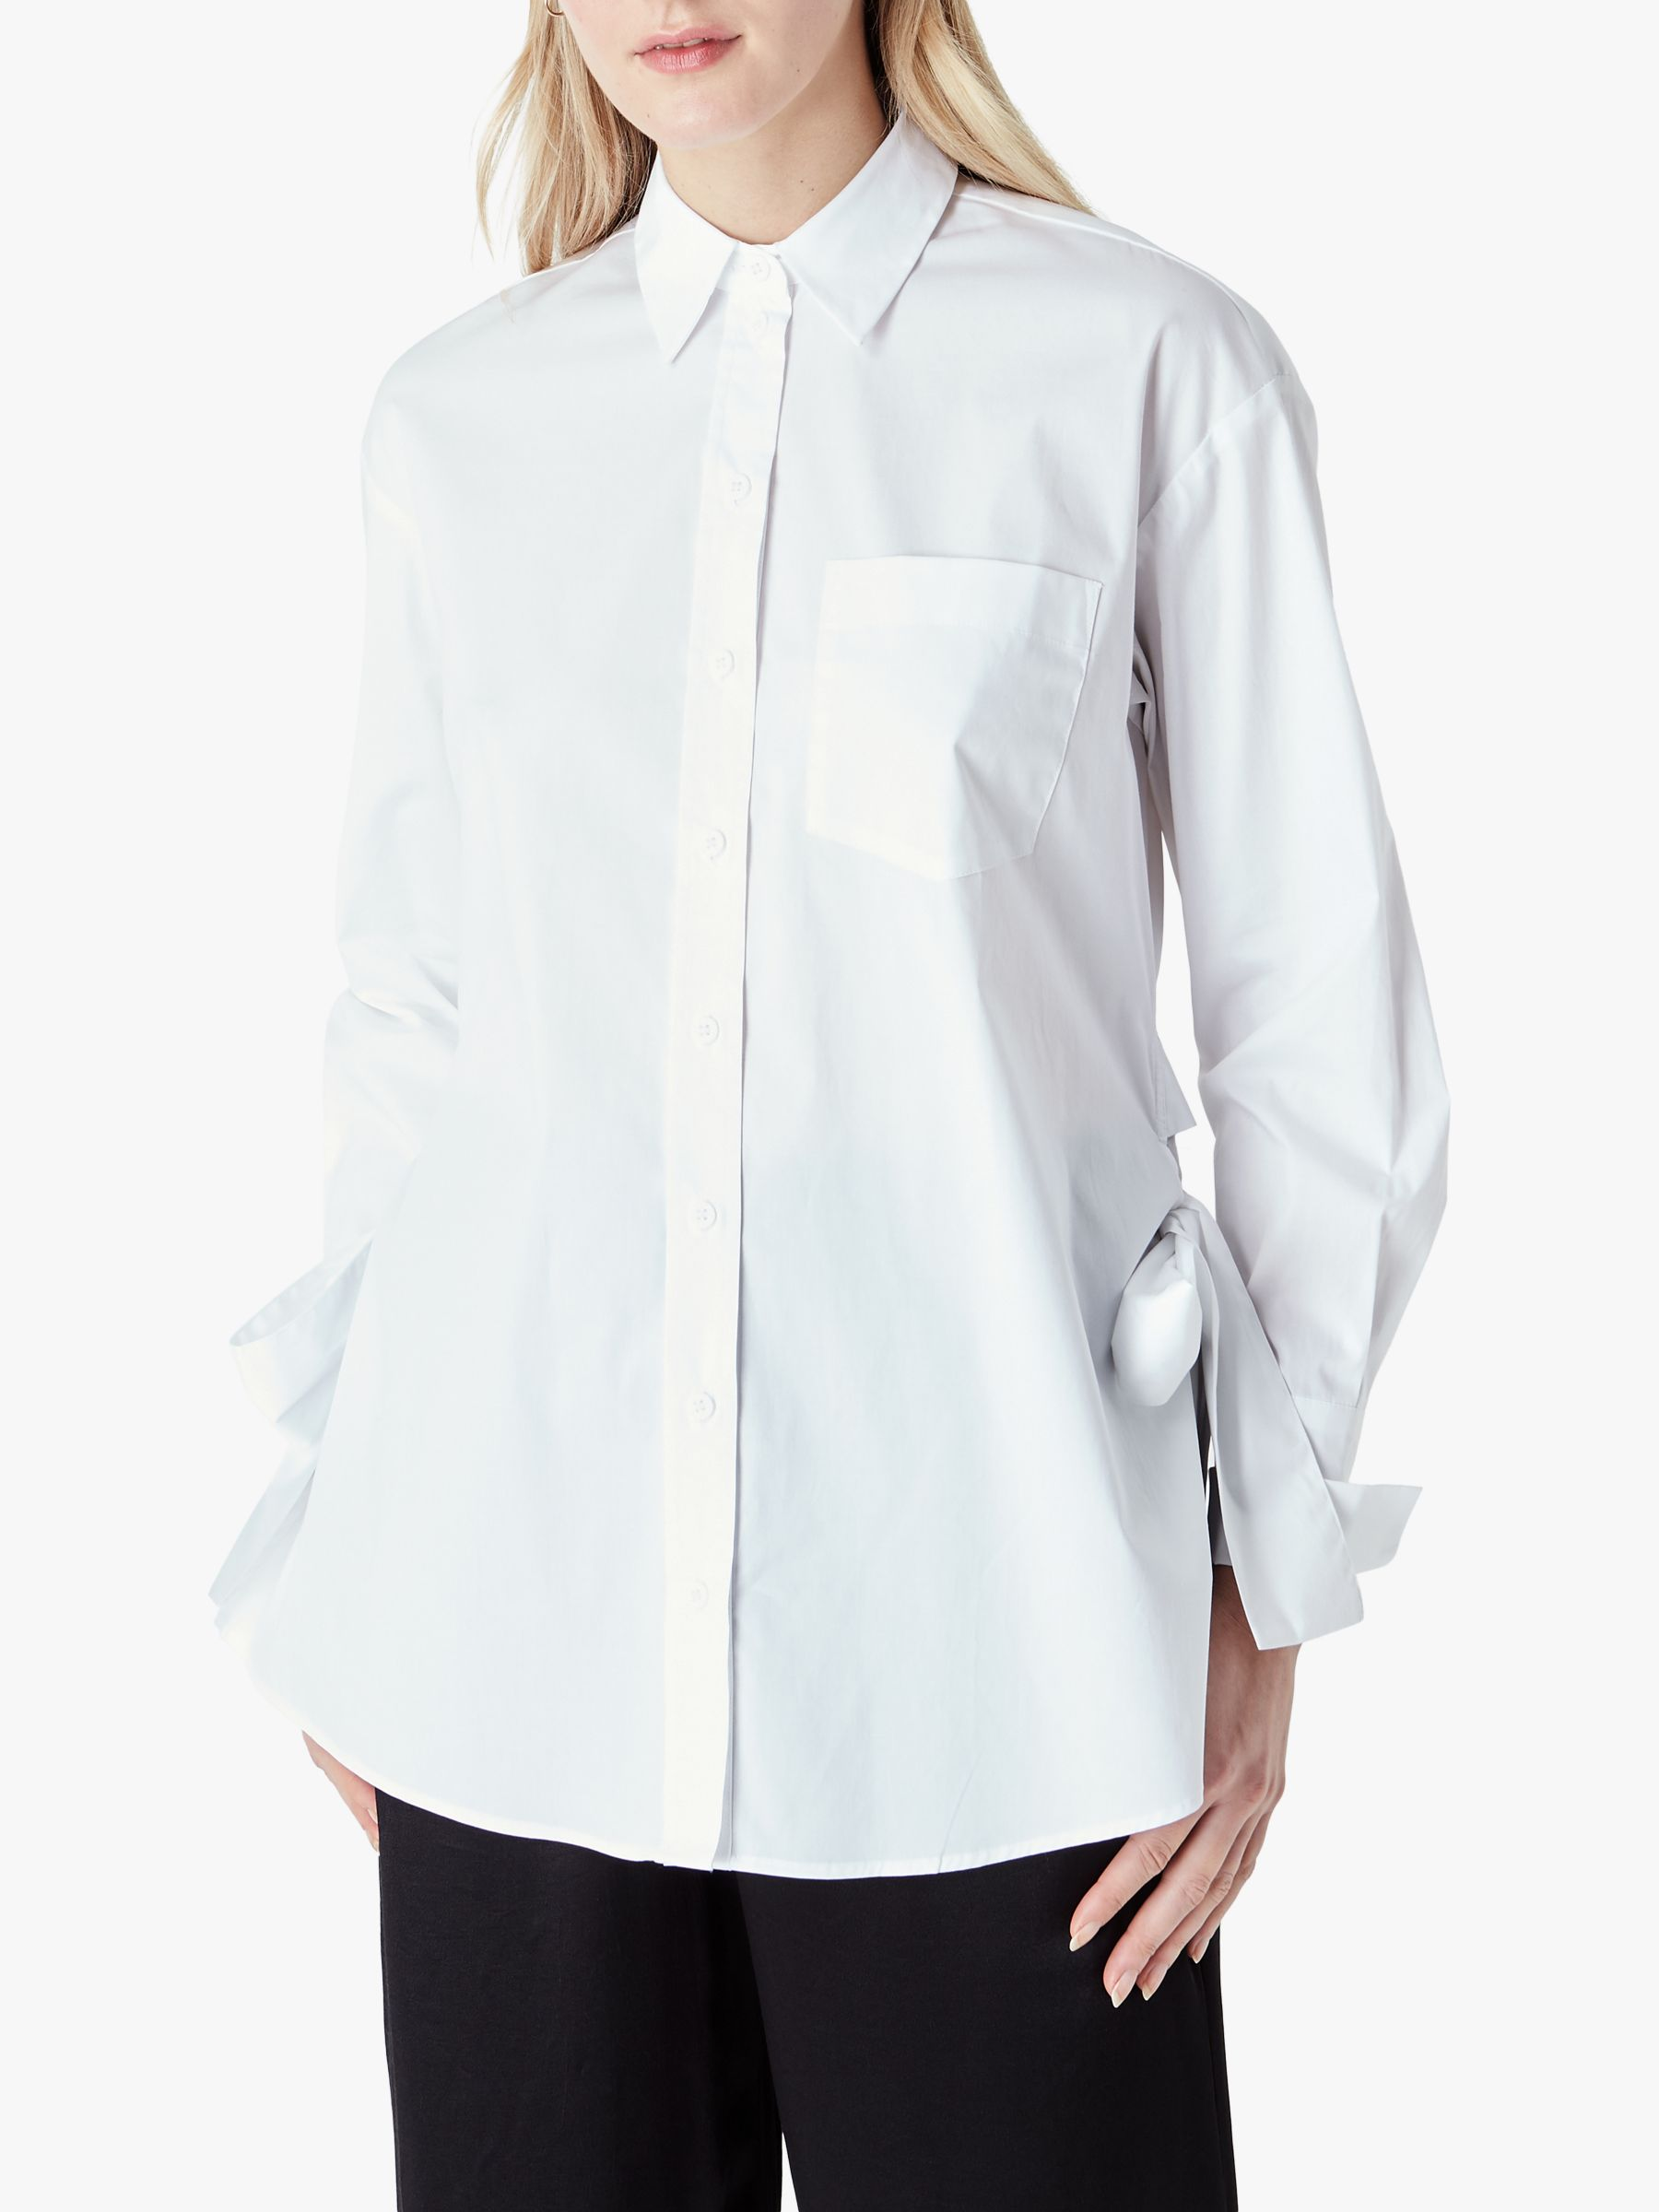 Finery Finery Lewis Side Tie Shirt, White